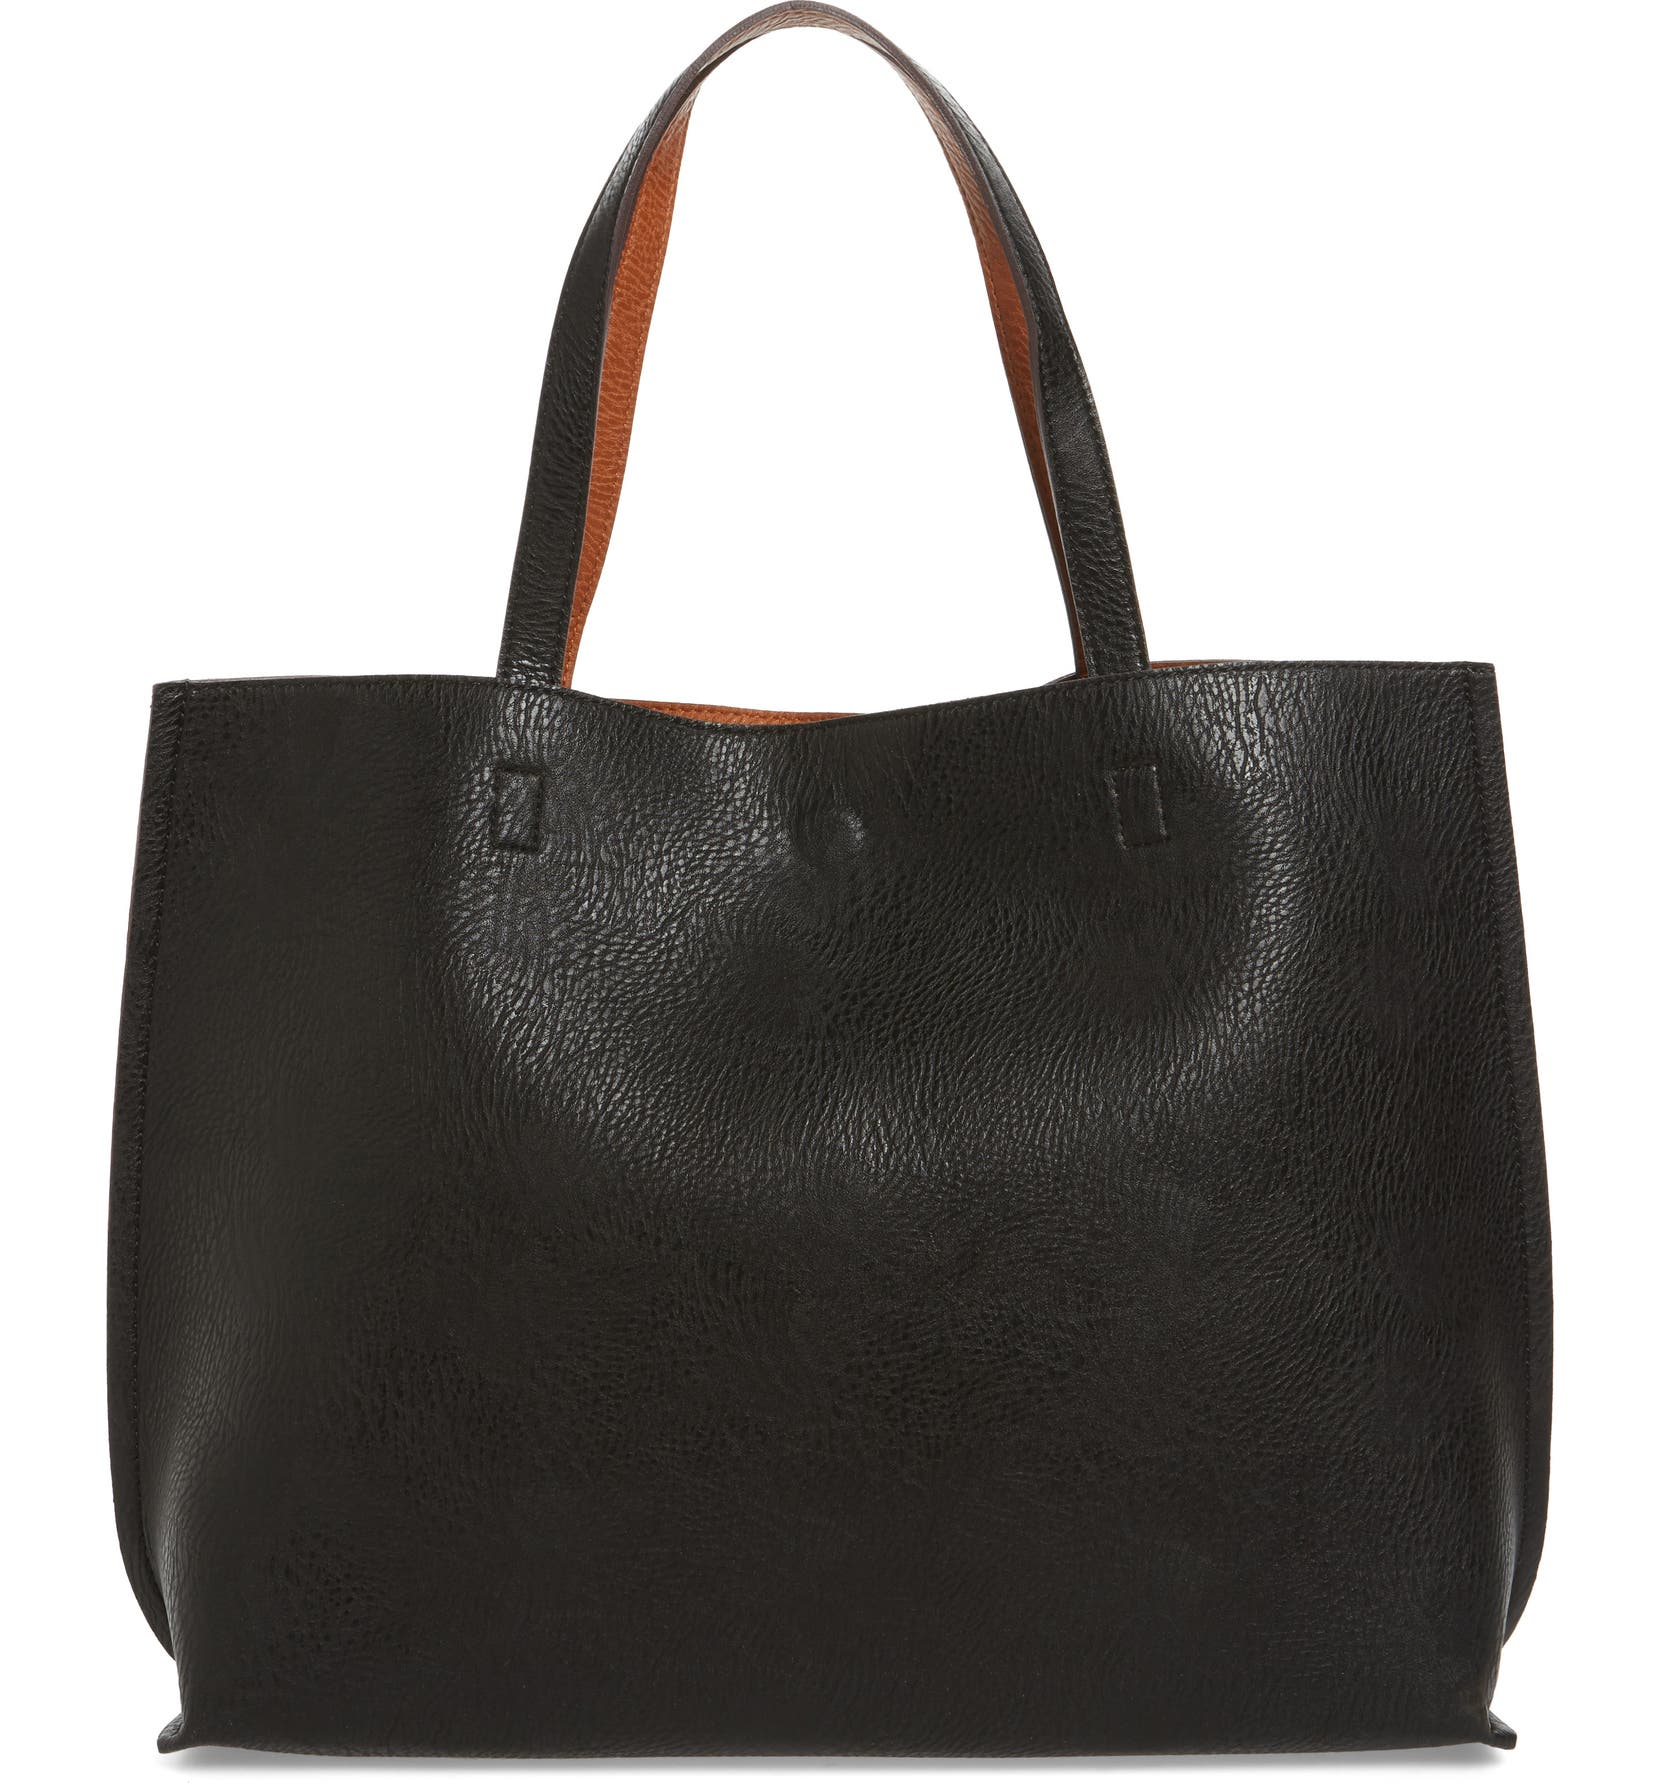 58614a702239c Street Level Reversible Faux Leather Tote & Wristlet | Nordstrom